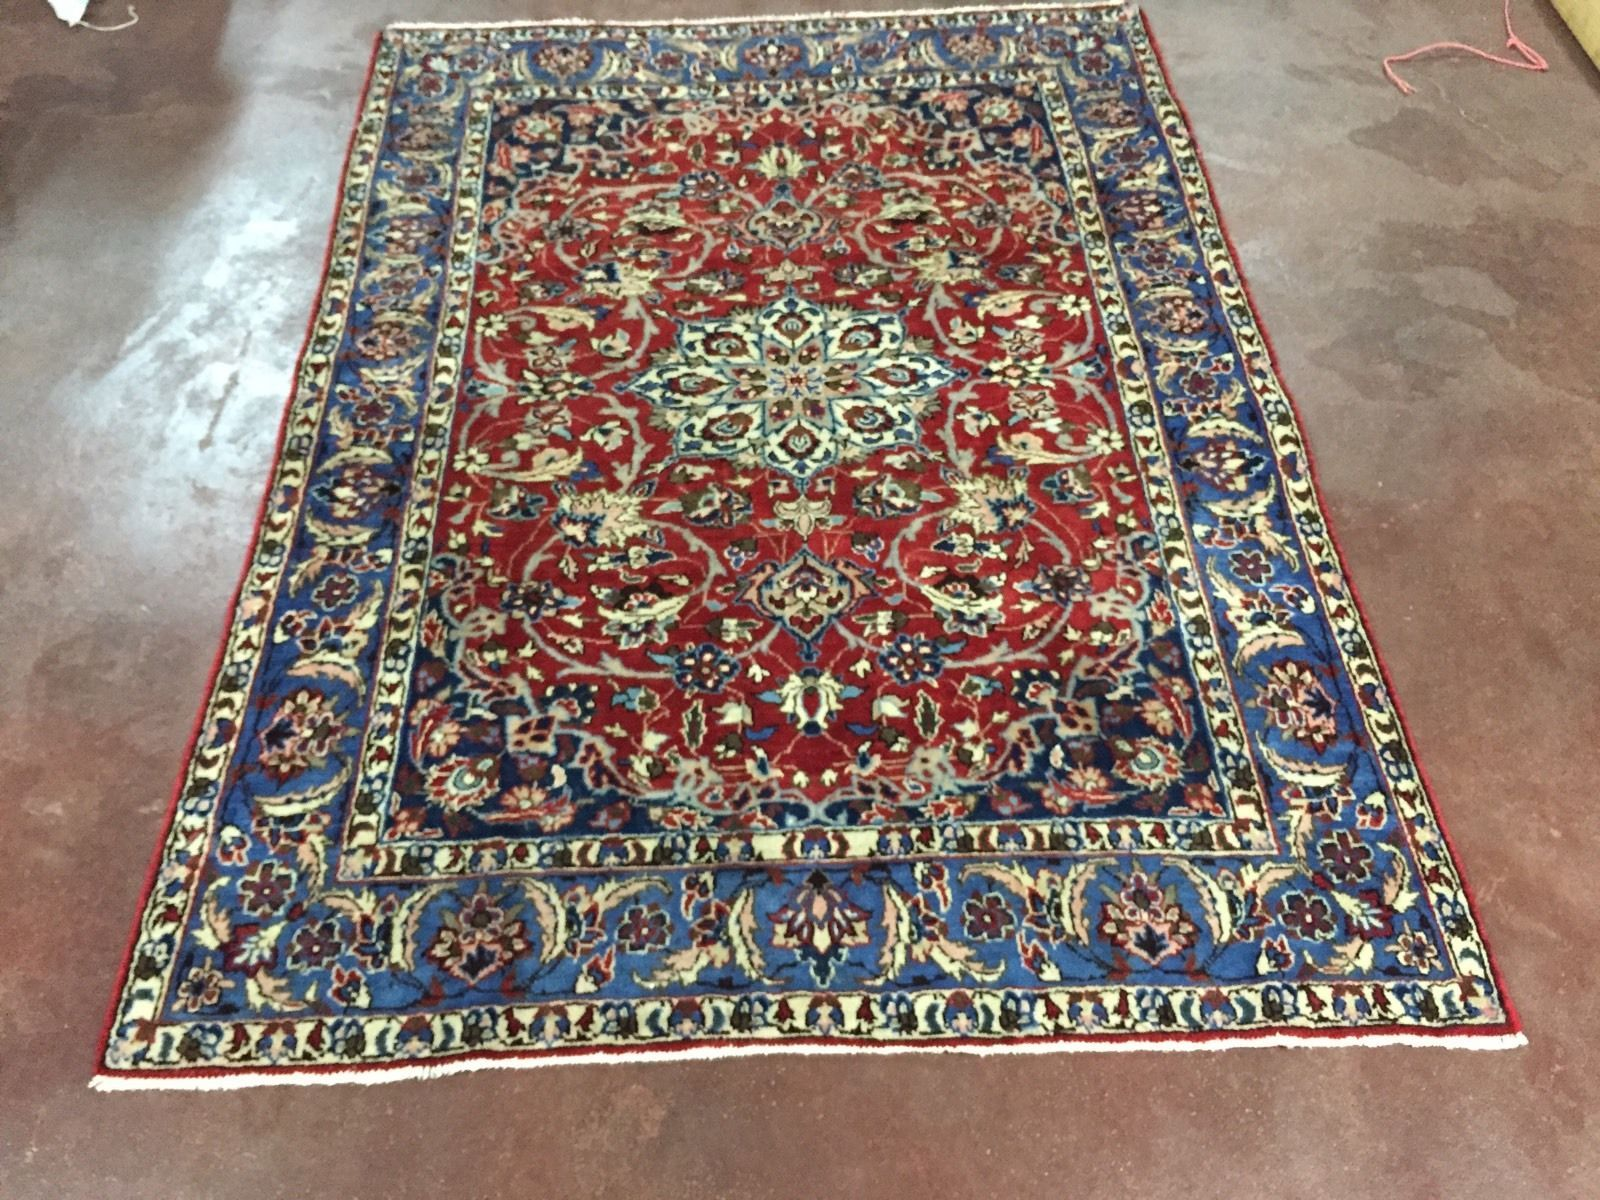 Miho Teppiche 4 100 Hand Knotted Wool Made In Esfahan Najaf Abad Iran 1